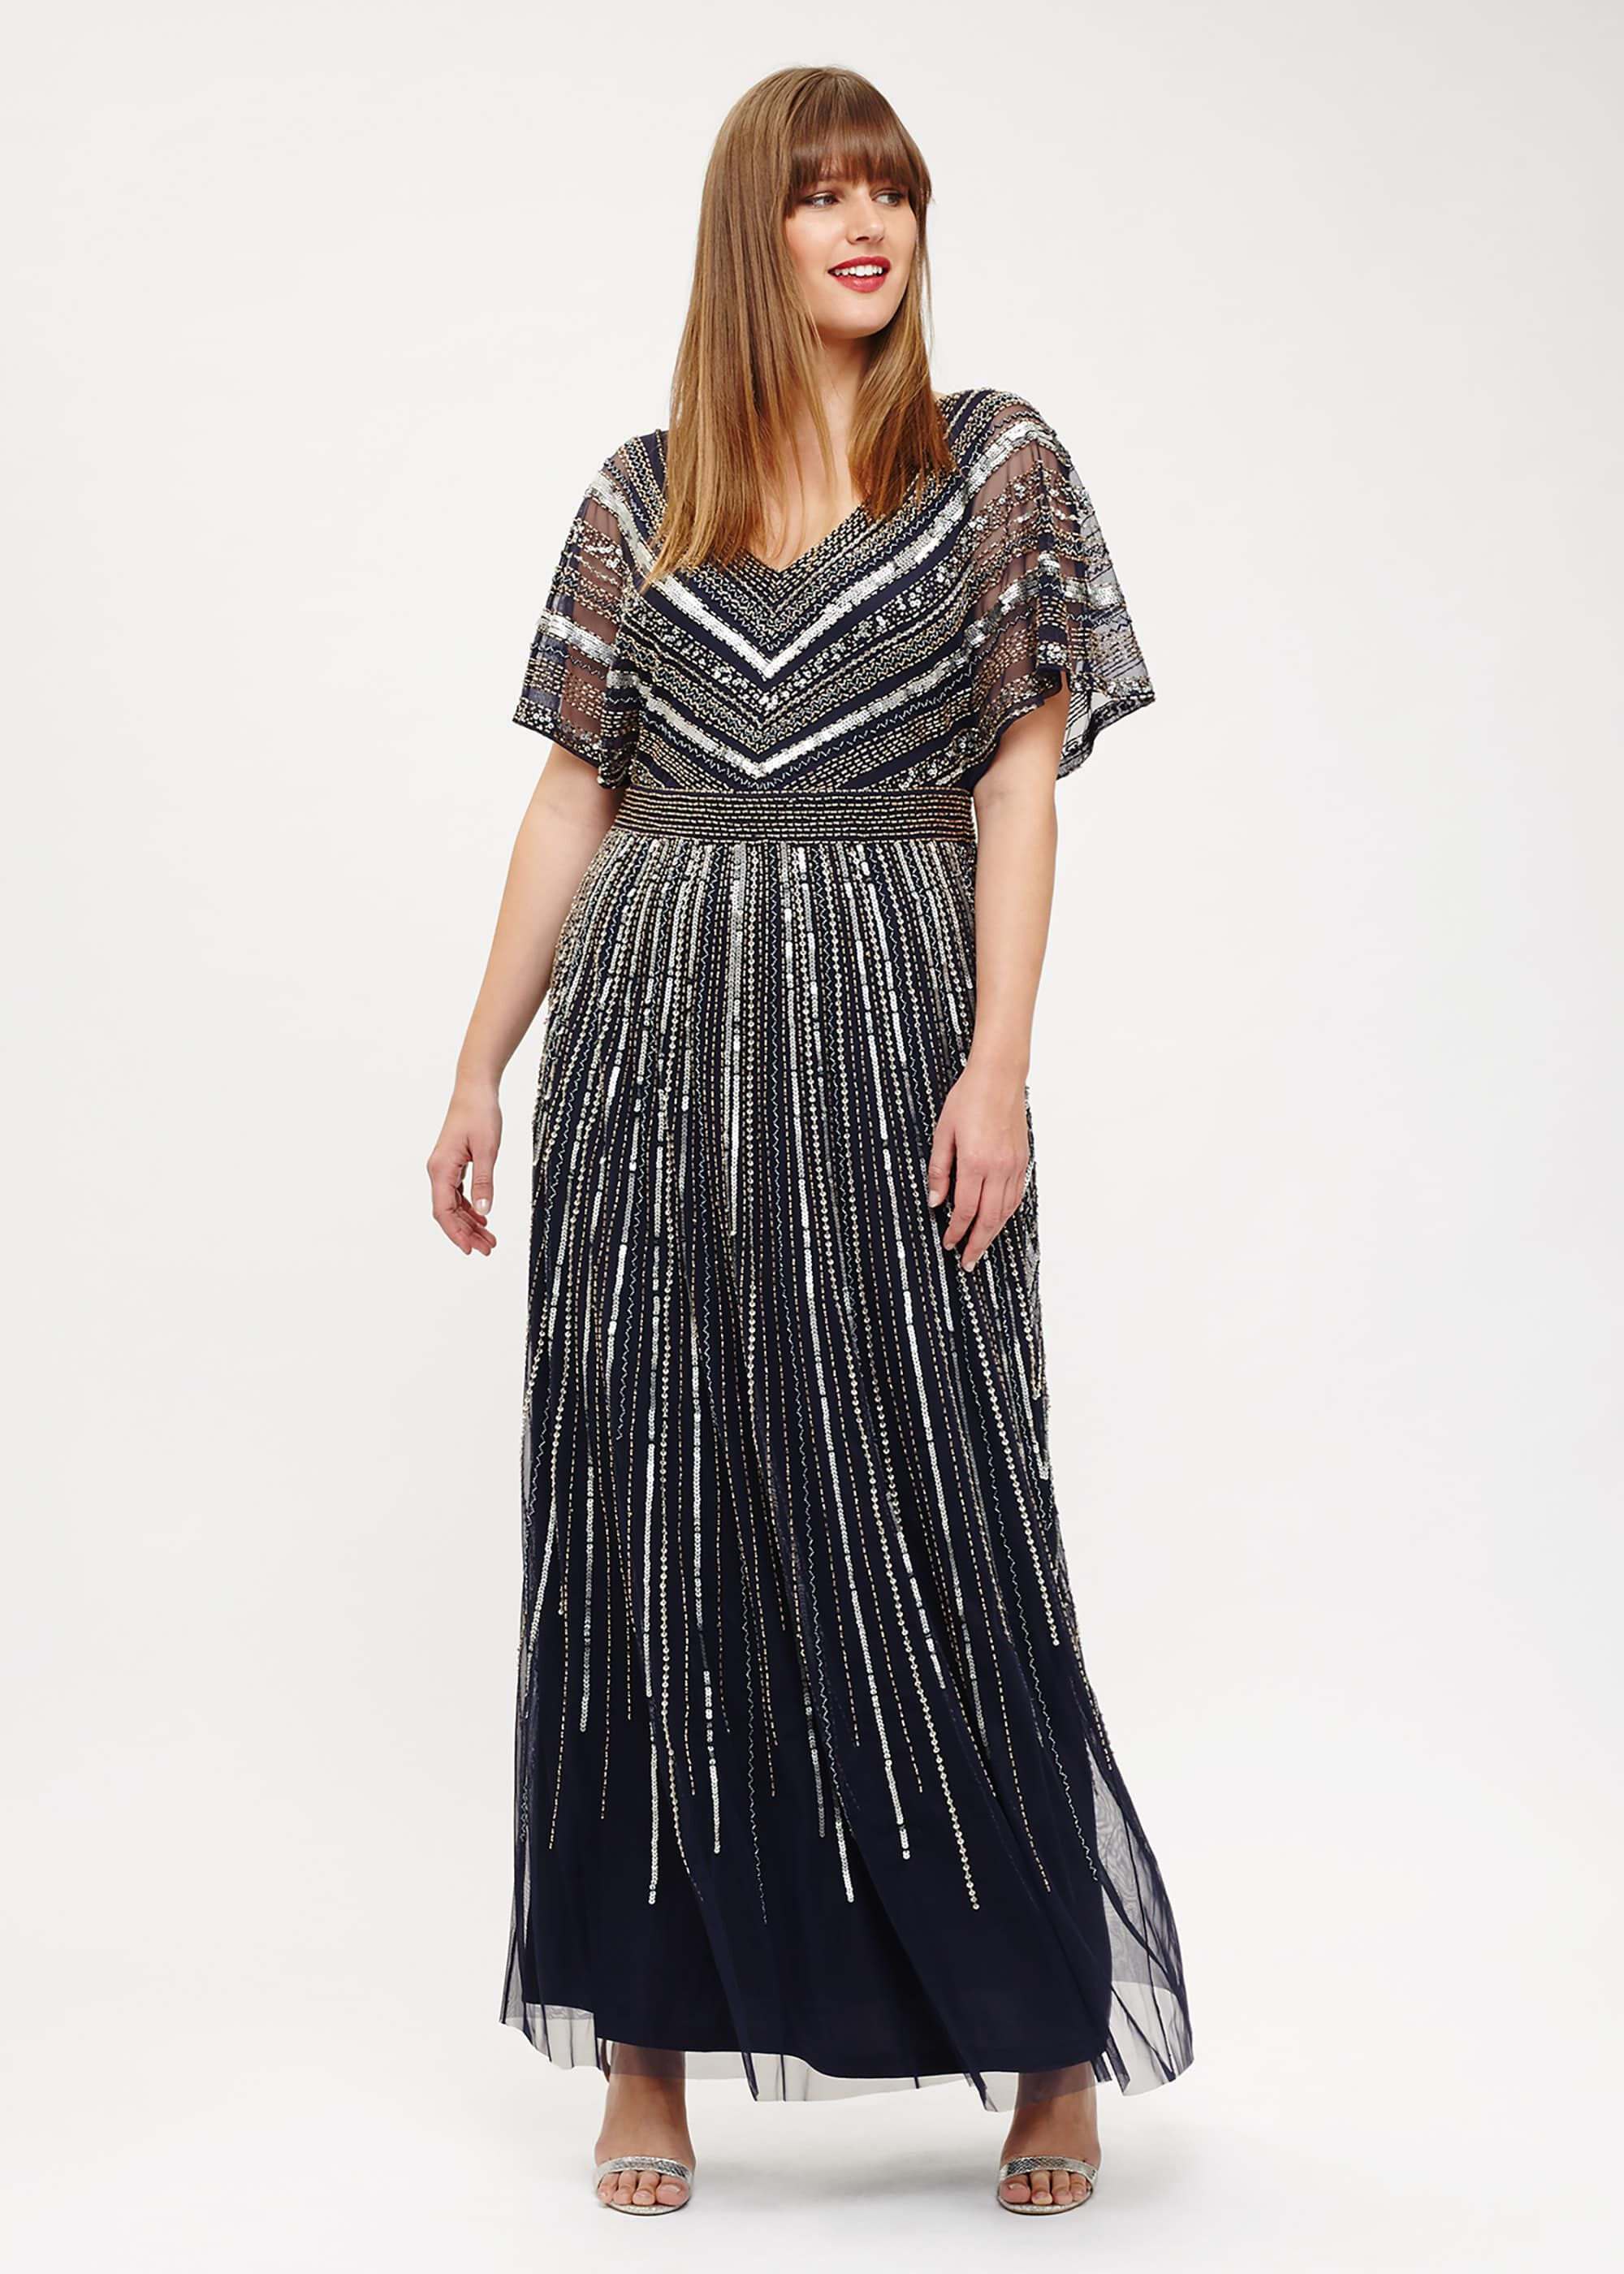 Studio 8 Avalon Beaded Maxi Dress, Blue, Maxi, Occasion Dress